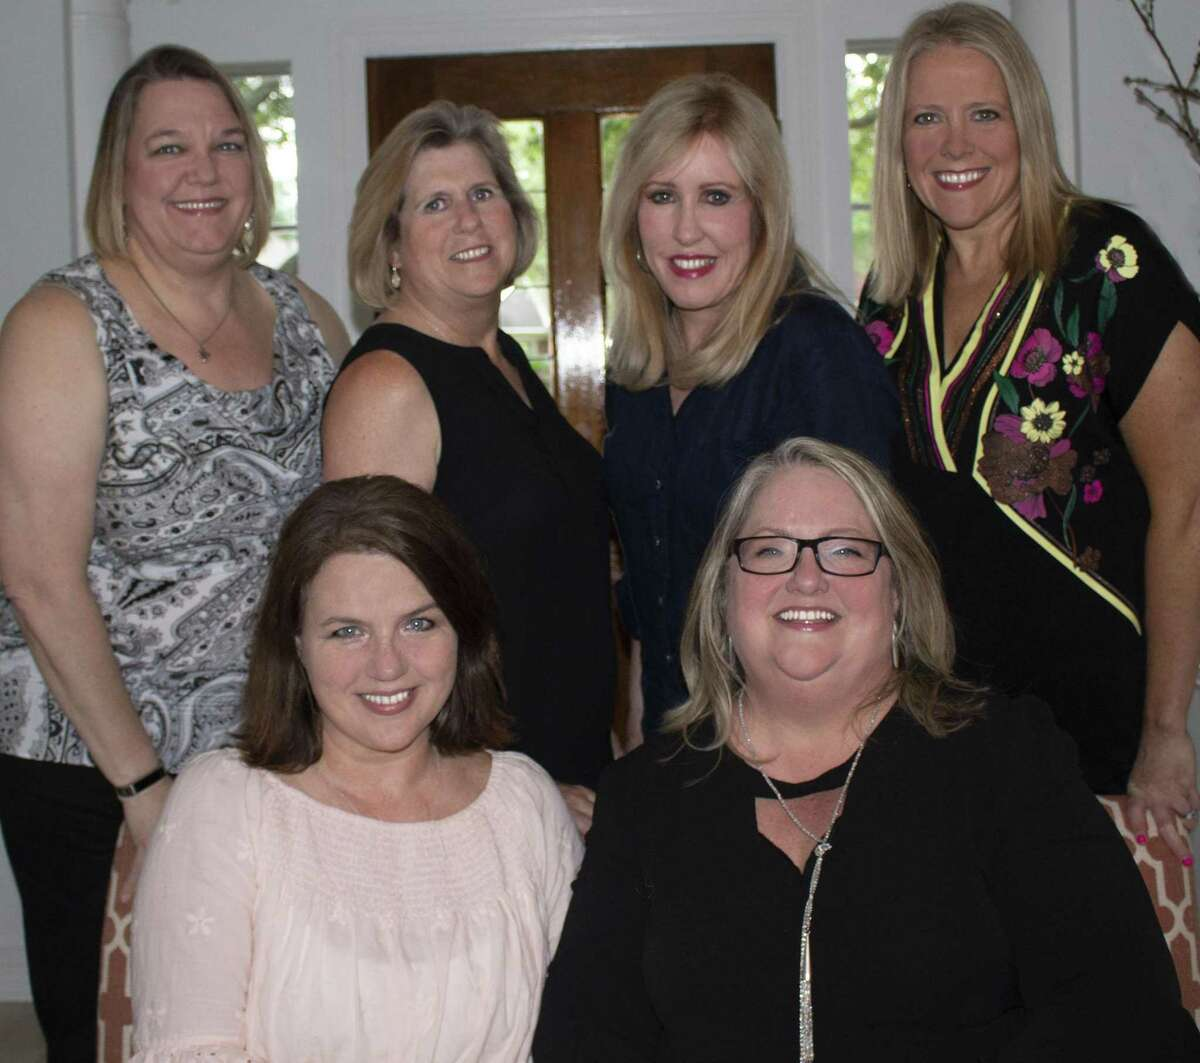 Fort Bend County Alumnae Panhellenic announces its executive board for 2018-19. From left are front row:Co-Presidents Amy McInnis and Susan Mallios; back row:Treasurer Carroll Ann Adams, Secretary Terrie Gornet, Co-Past President Liz Furman and Vice President Debbie Buckner. Not pictured is Past Co-President Kathy Keene.